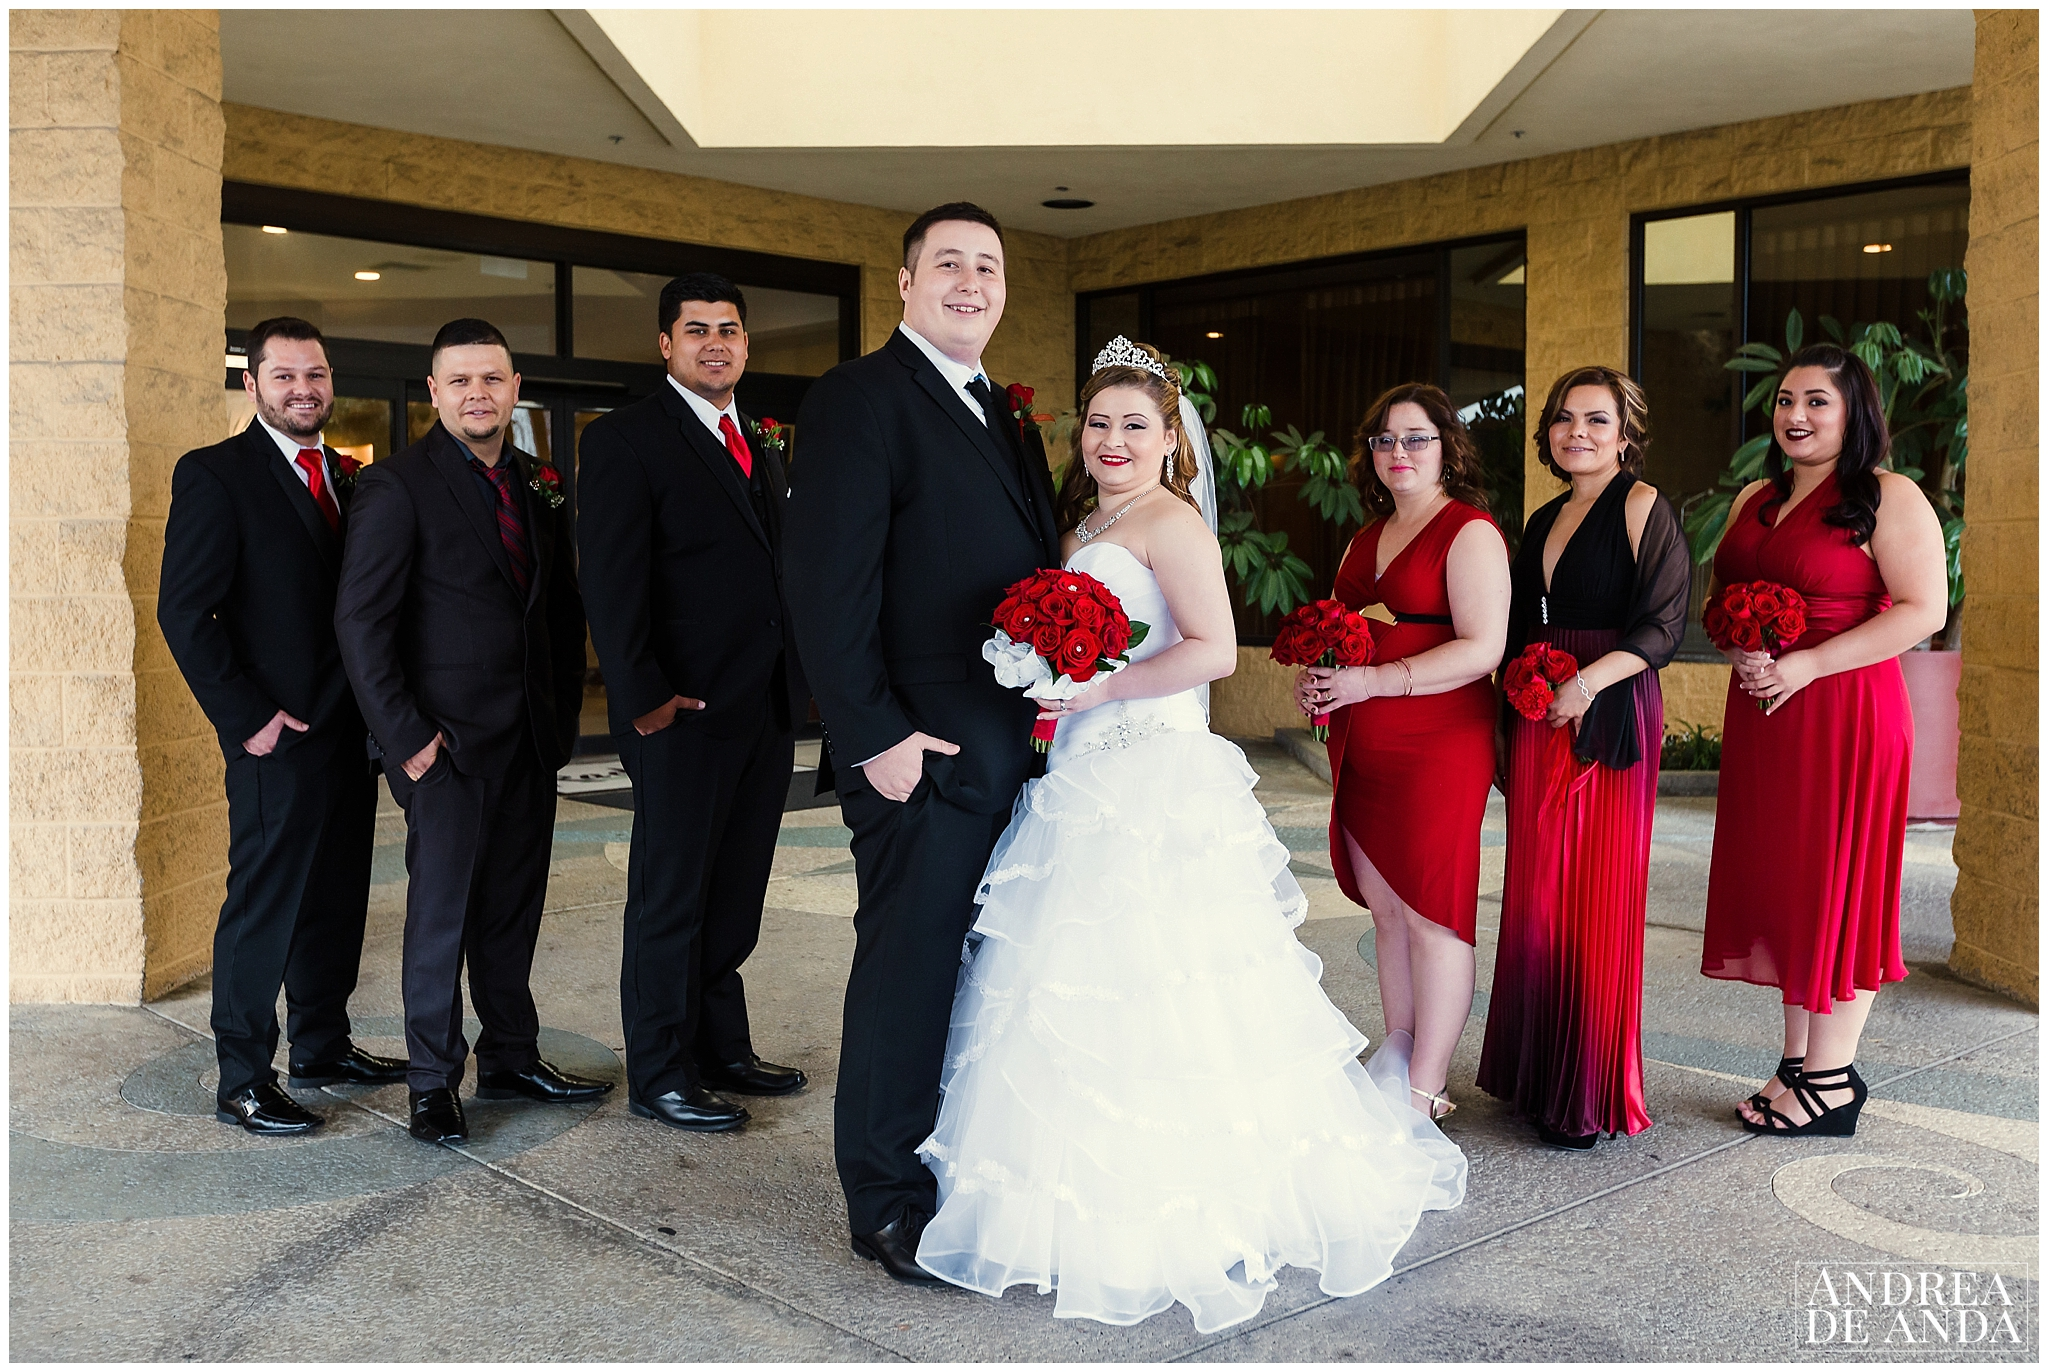 Santa Maria Wedding Photographer_ Andrea de Anda Photography__0021.jpg